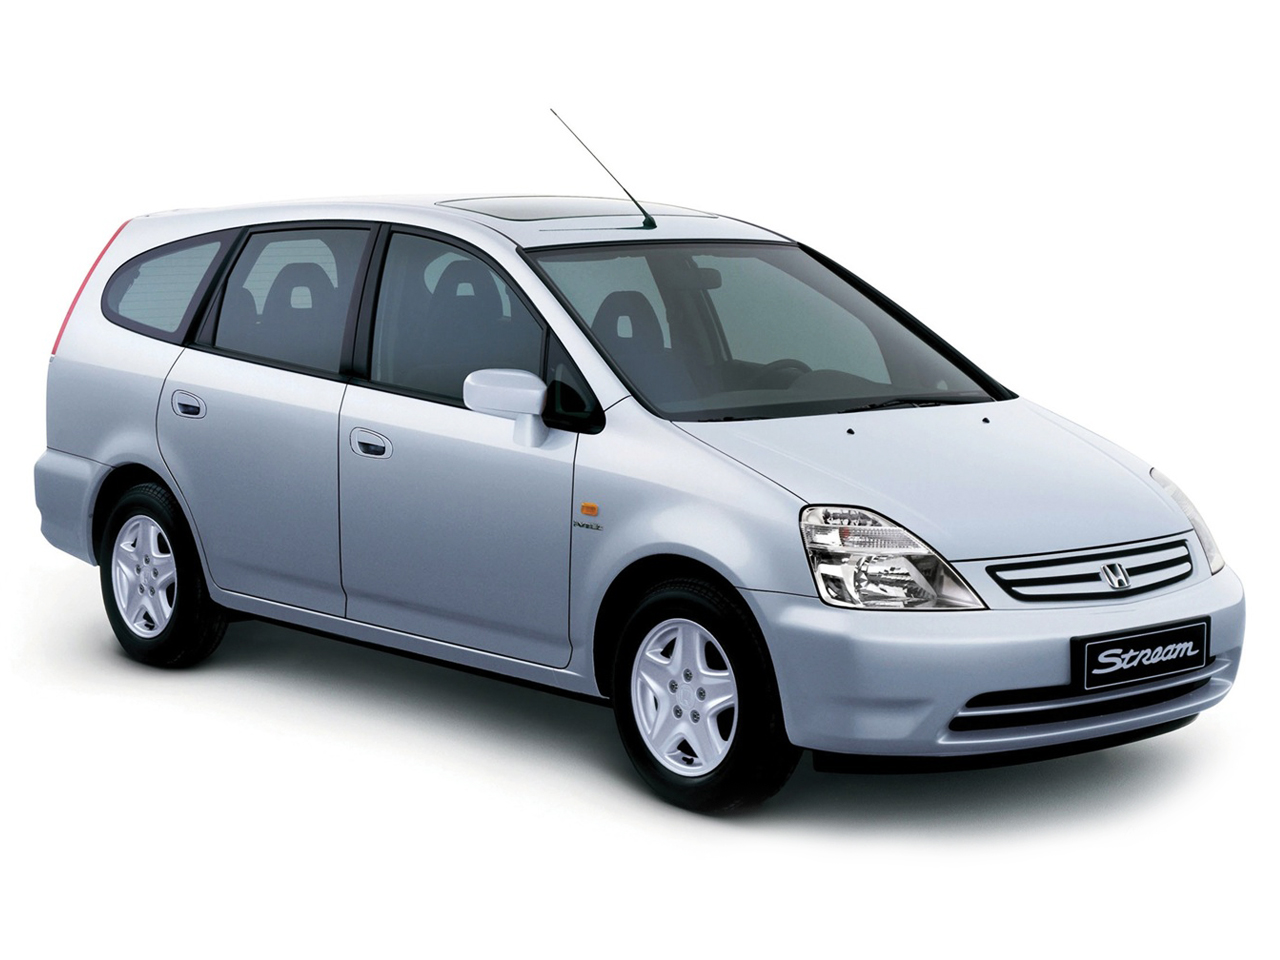 Toyota Wish 2006 Reviews Prices Ratings With Various